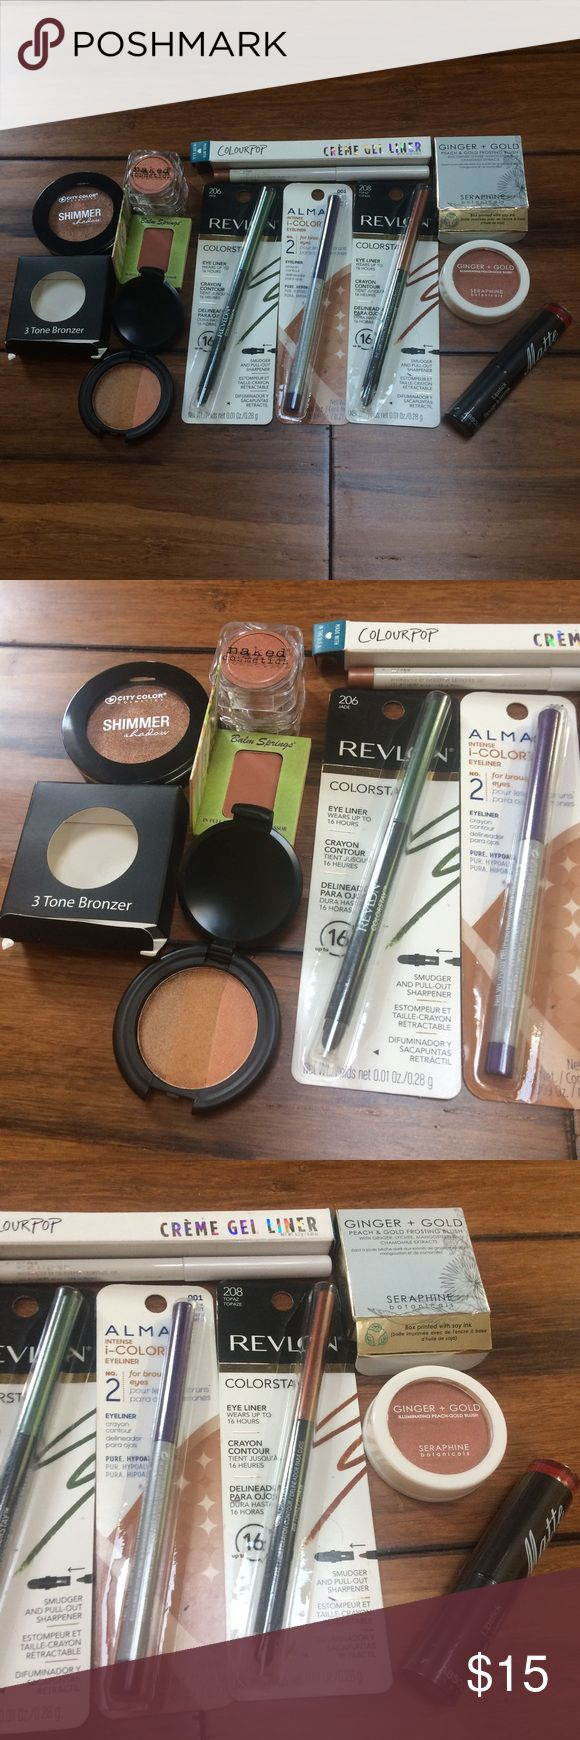 Makeup Lot All is New and in Packaging! Includes: City Color Cosmetics Shimmer Shadow, Balm Springs Blush, 3 Tone Bronzer, Naked Cosmetics Heavy Metal Eye Shadow, Colourpop Créme Gel Liner, Two Revlon Eyeliners in Jade & Topaz, One Alma Eyeliner in Black Amethyst, A Ginger + Gold Illuminating Peach-Gold Blush, And Red Matte Lipstick by Absolute New York. Makeup